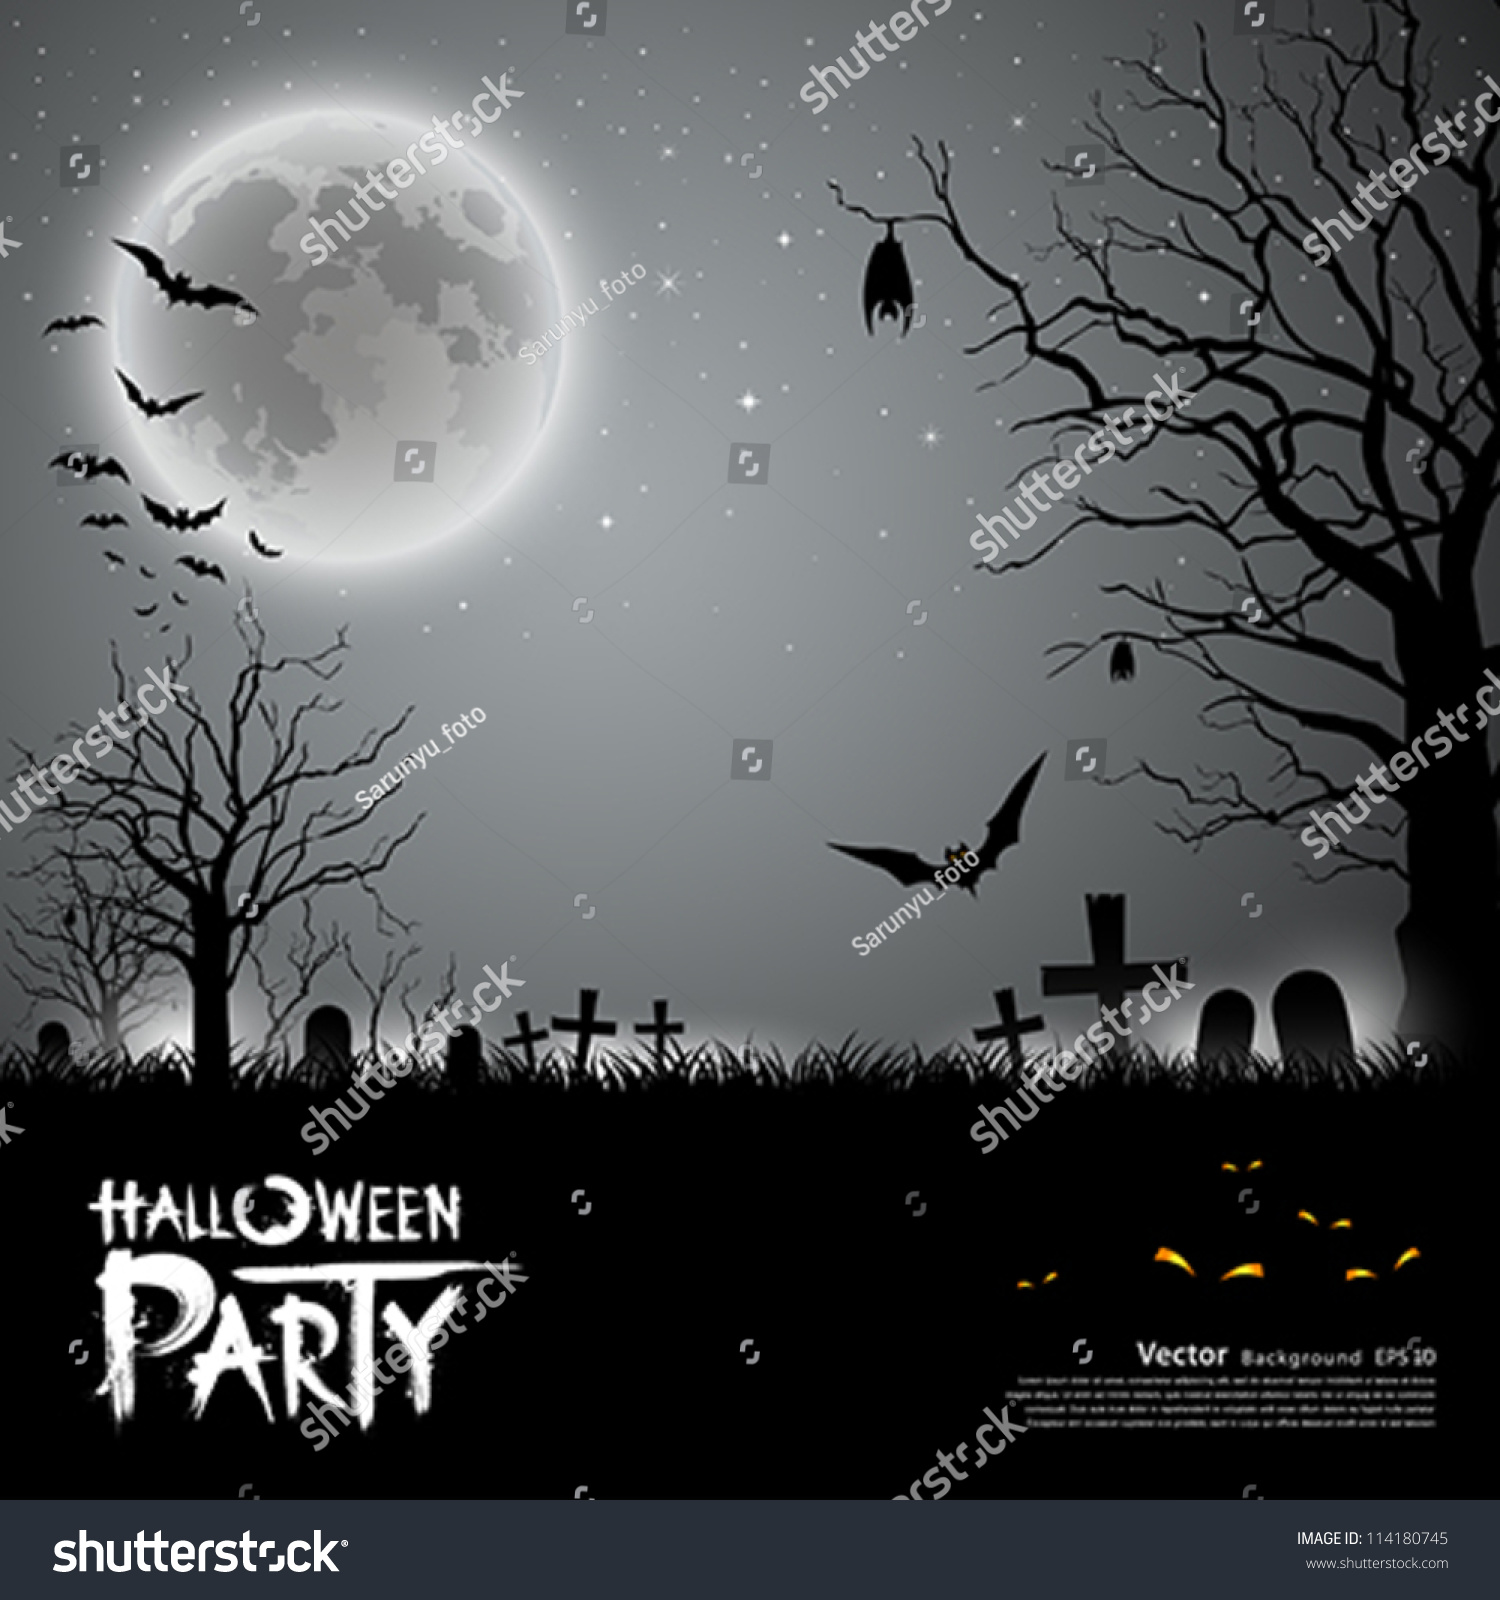 Halloween Party Scary Background Vector Illustration Stock Vector ...